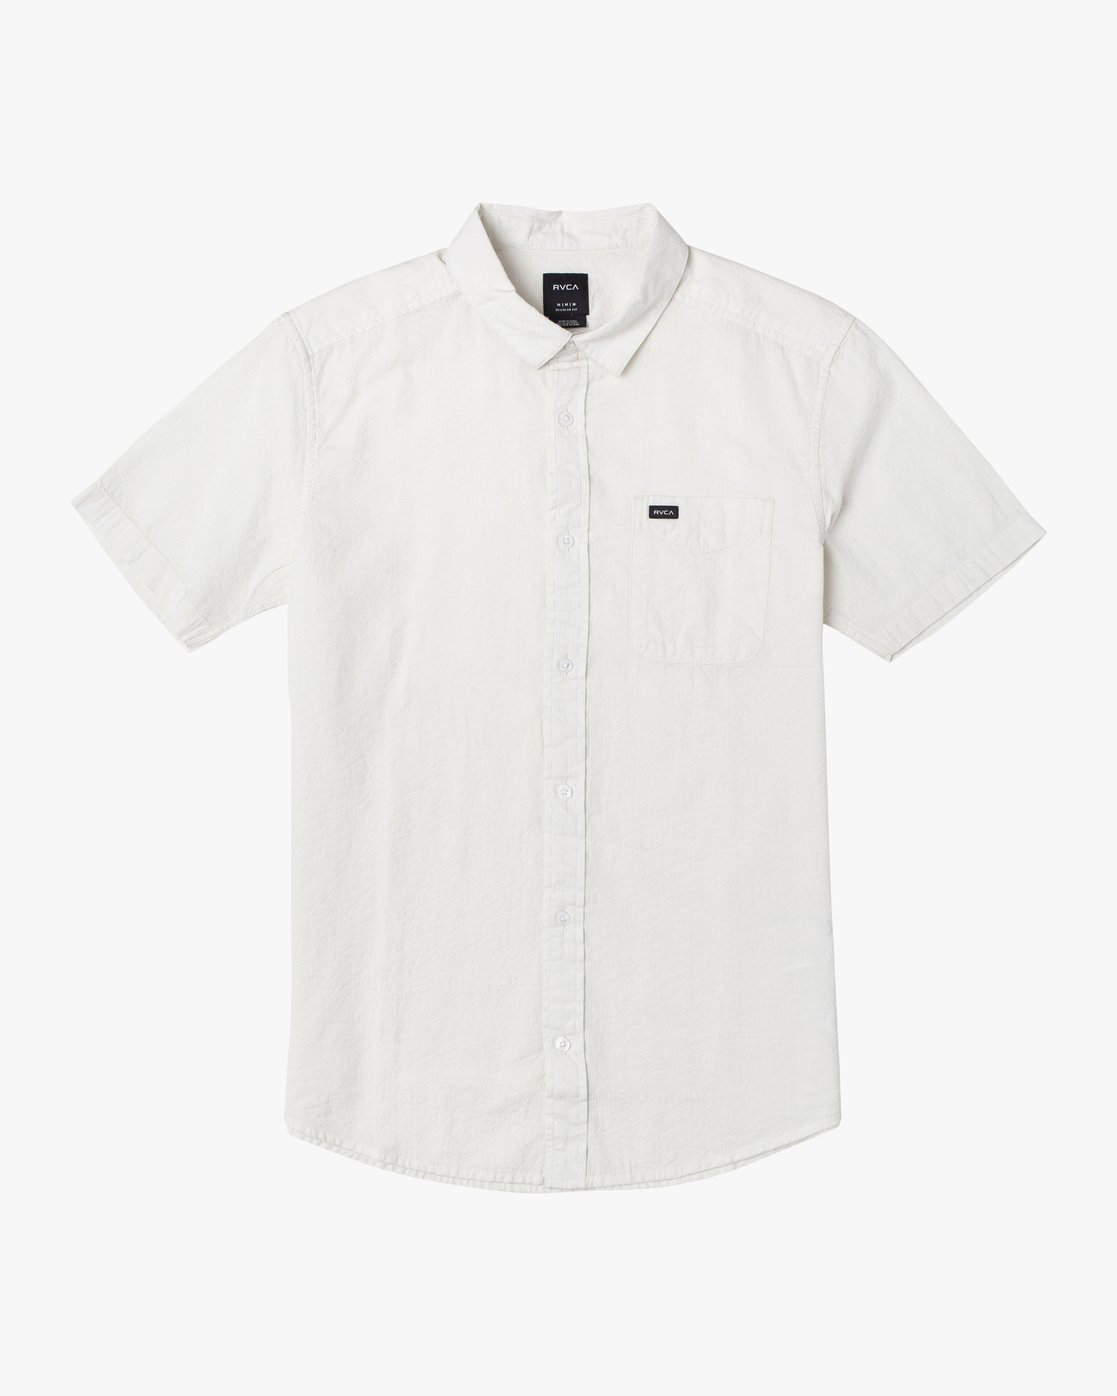 0 ENDLESS SEERSUCKER SHORT SLEEVE SHIRT White M5192RES RVCA